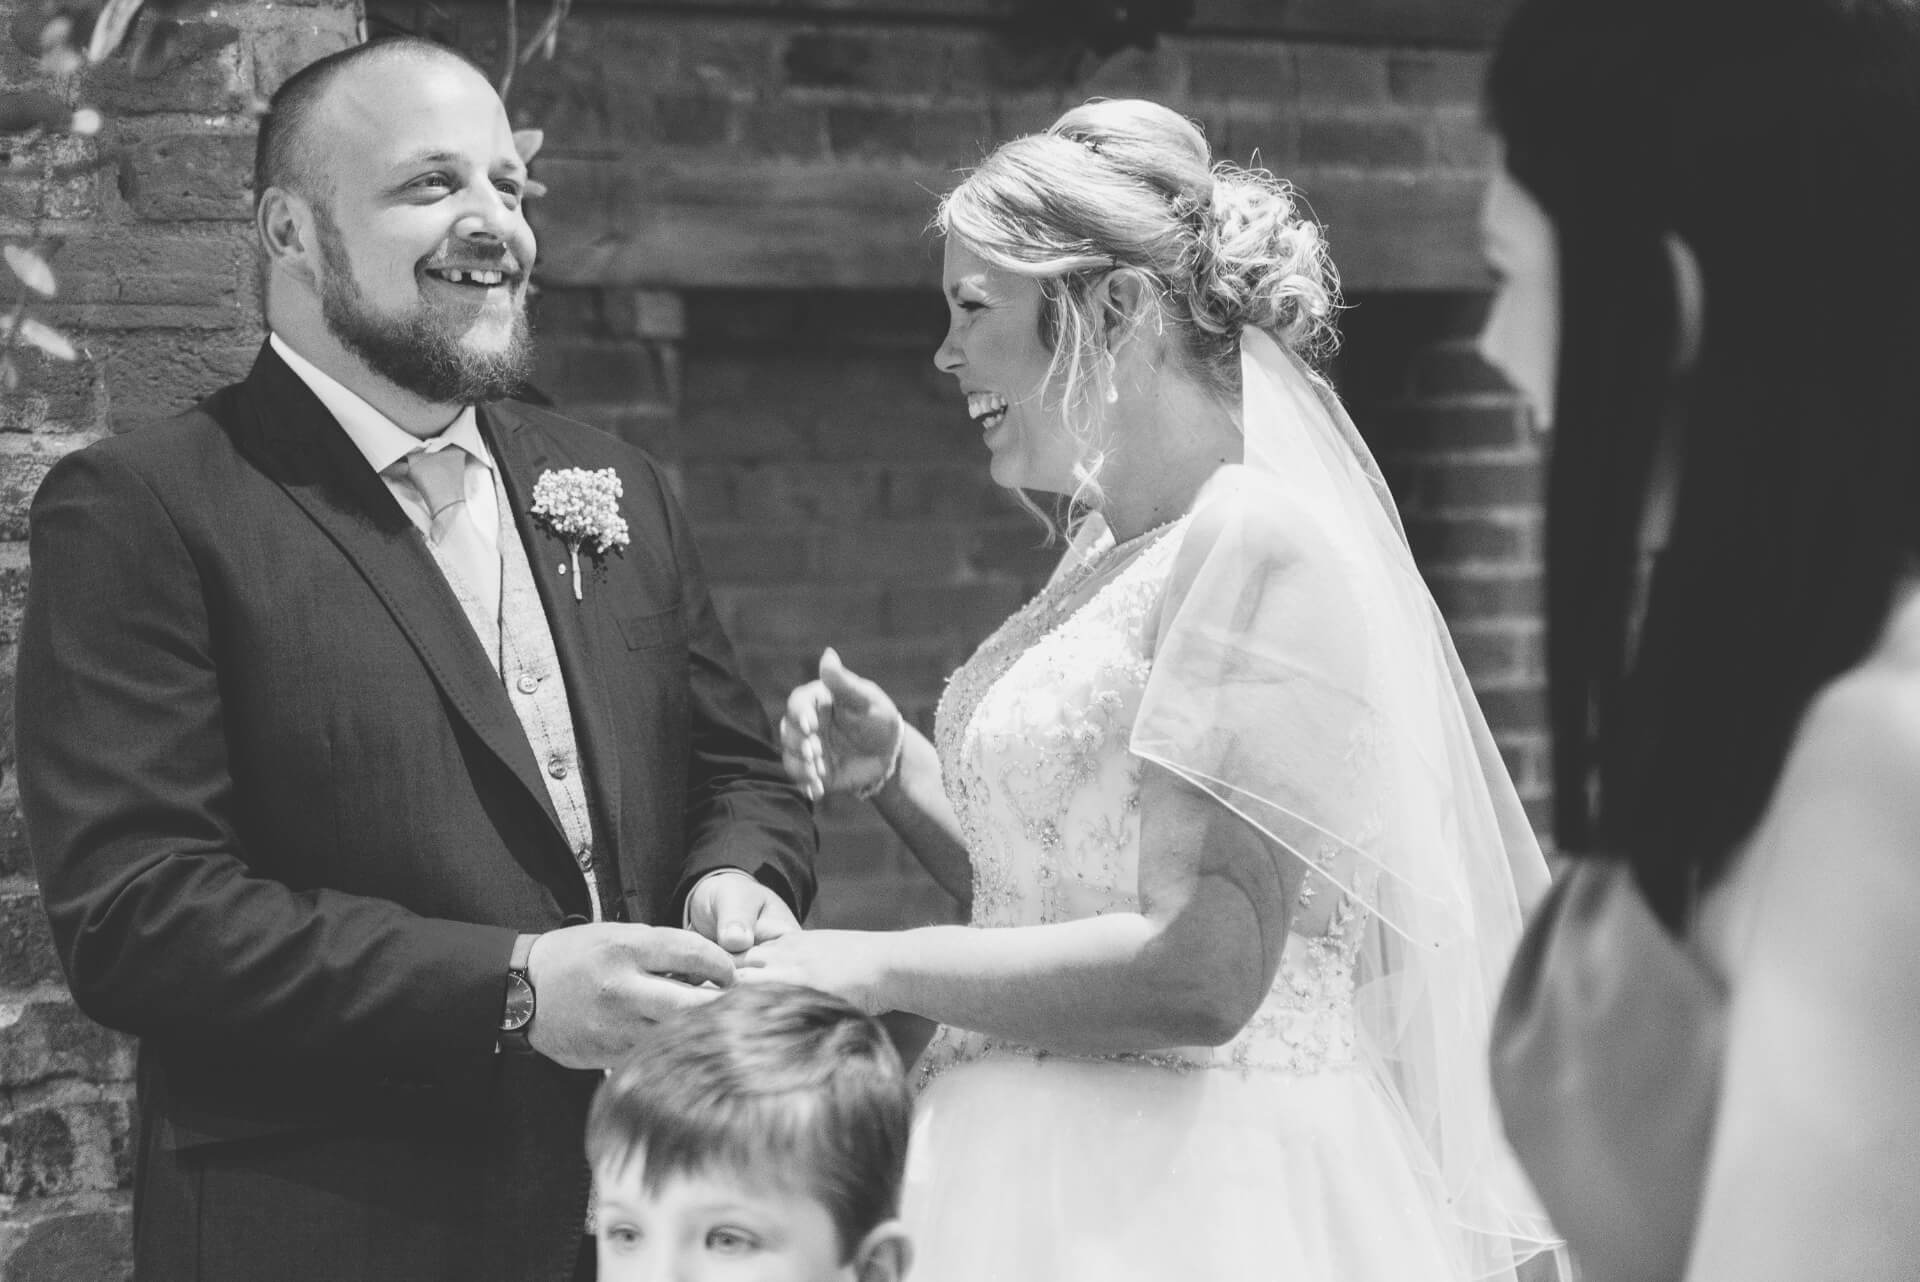 Bride and Groom laughing during wedding ceremony - natural wedding photography at Whaplode Manor by Slice of Life